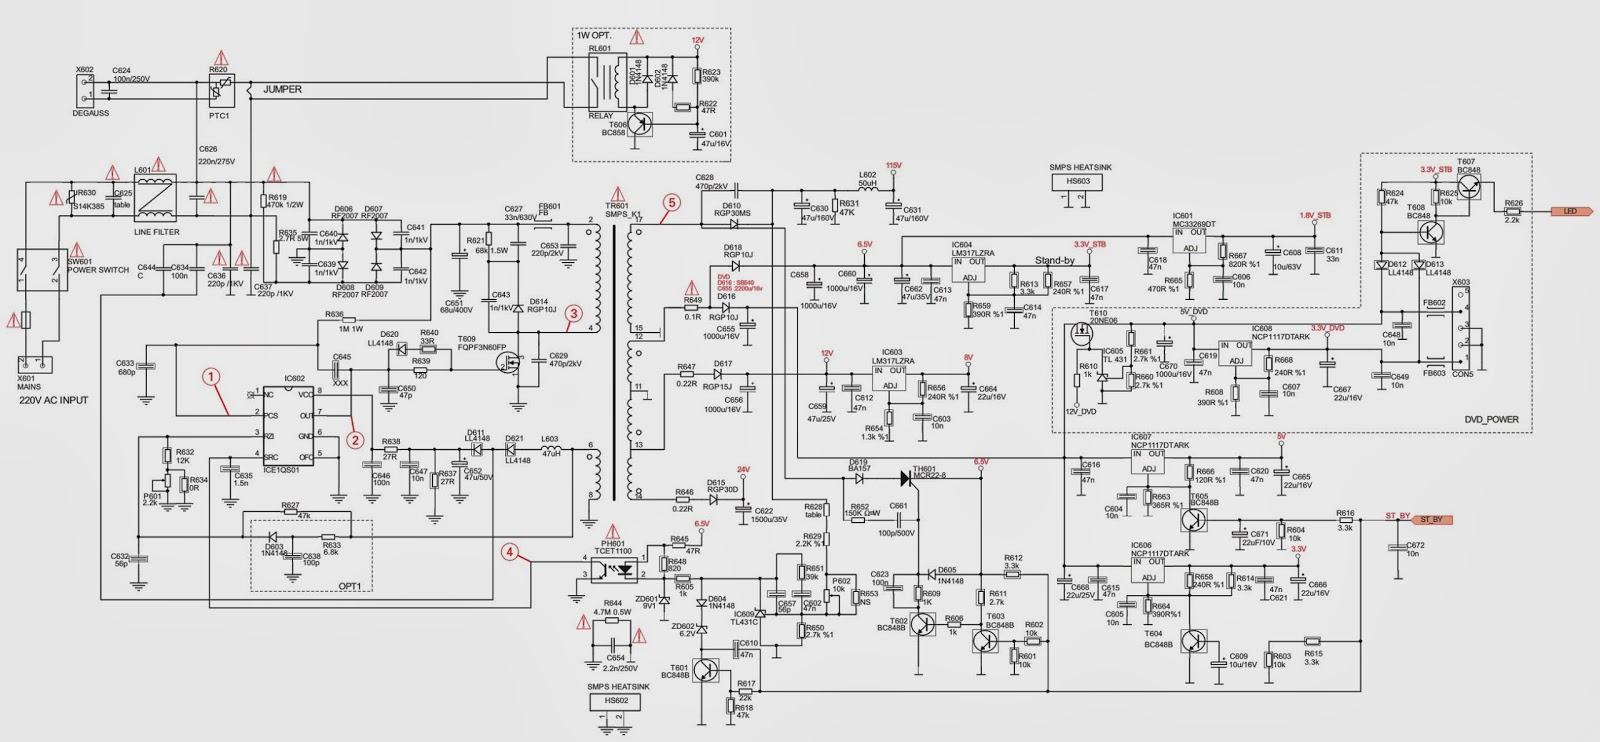 Crt Tv Power Diagram Great Design Of Wiring Schematic Samsung Personal 3d Viewer Circuit Pdf Lg